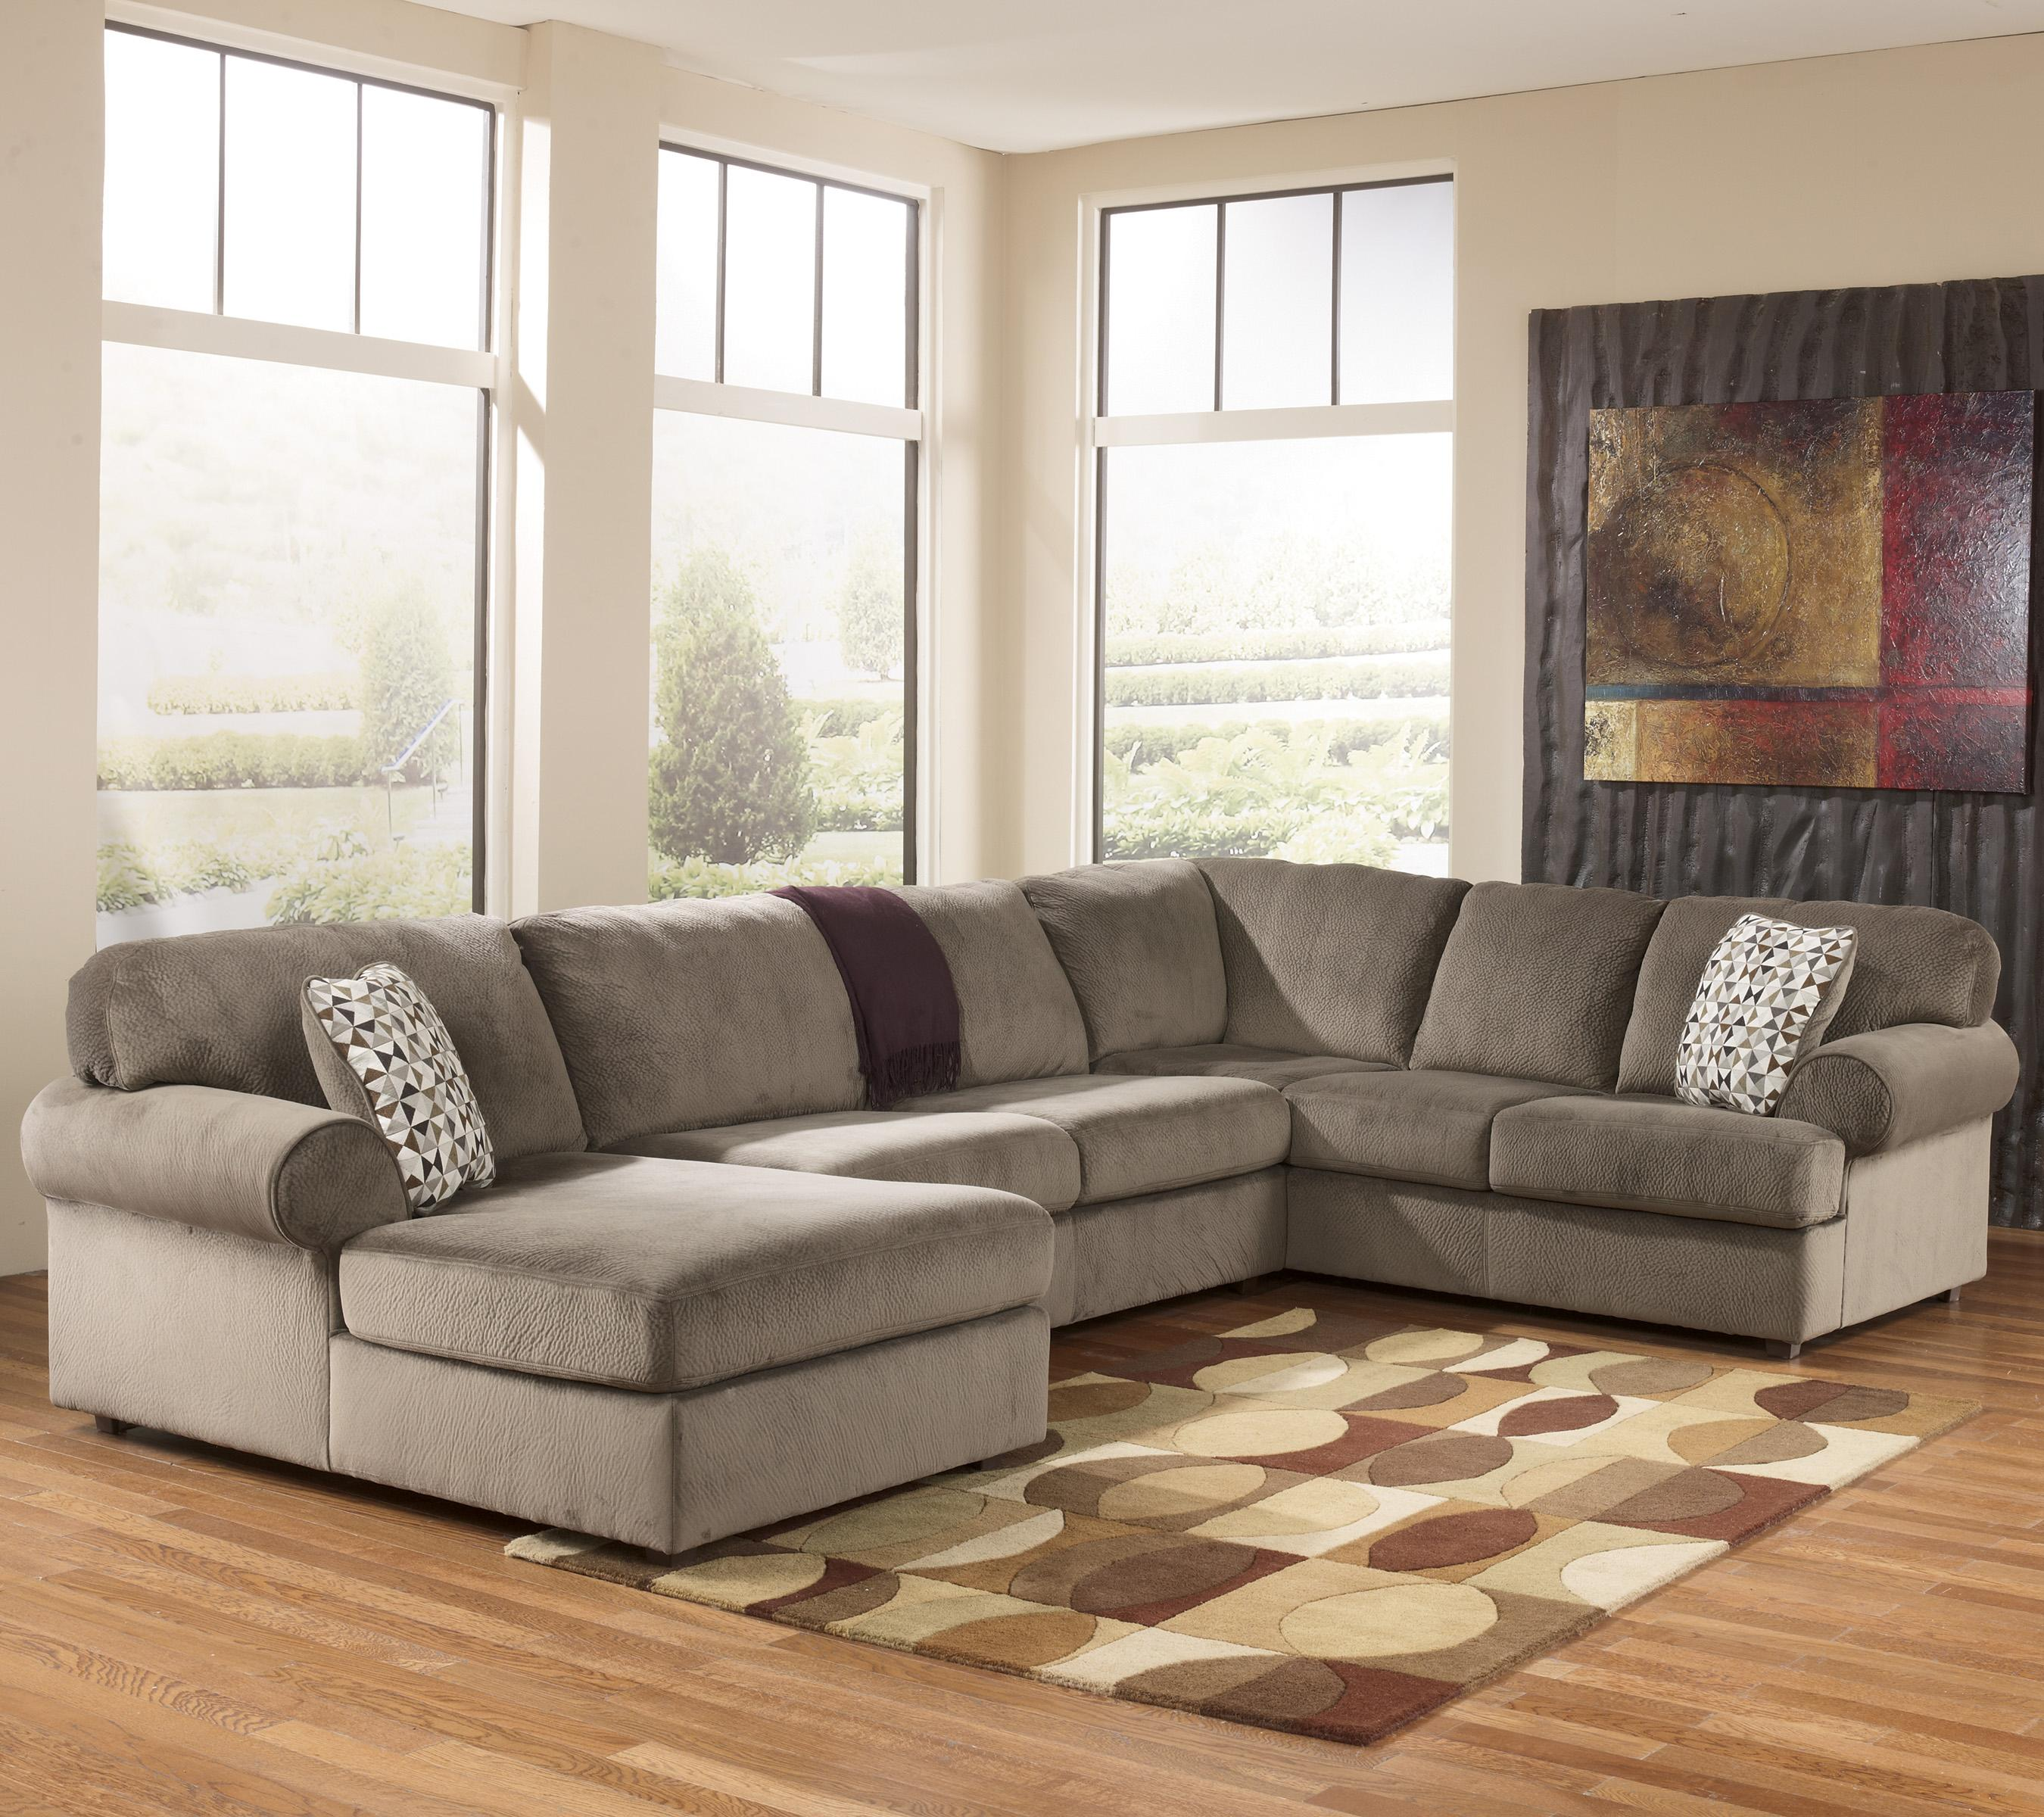 Ashleys Furiture: Casual Sectional Sofa With Left Chaise By Signature Design